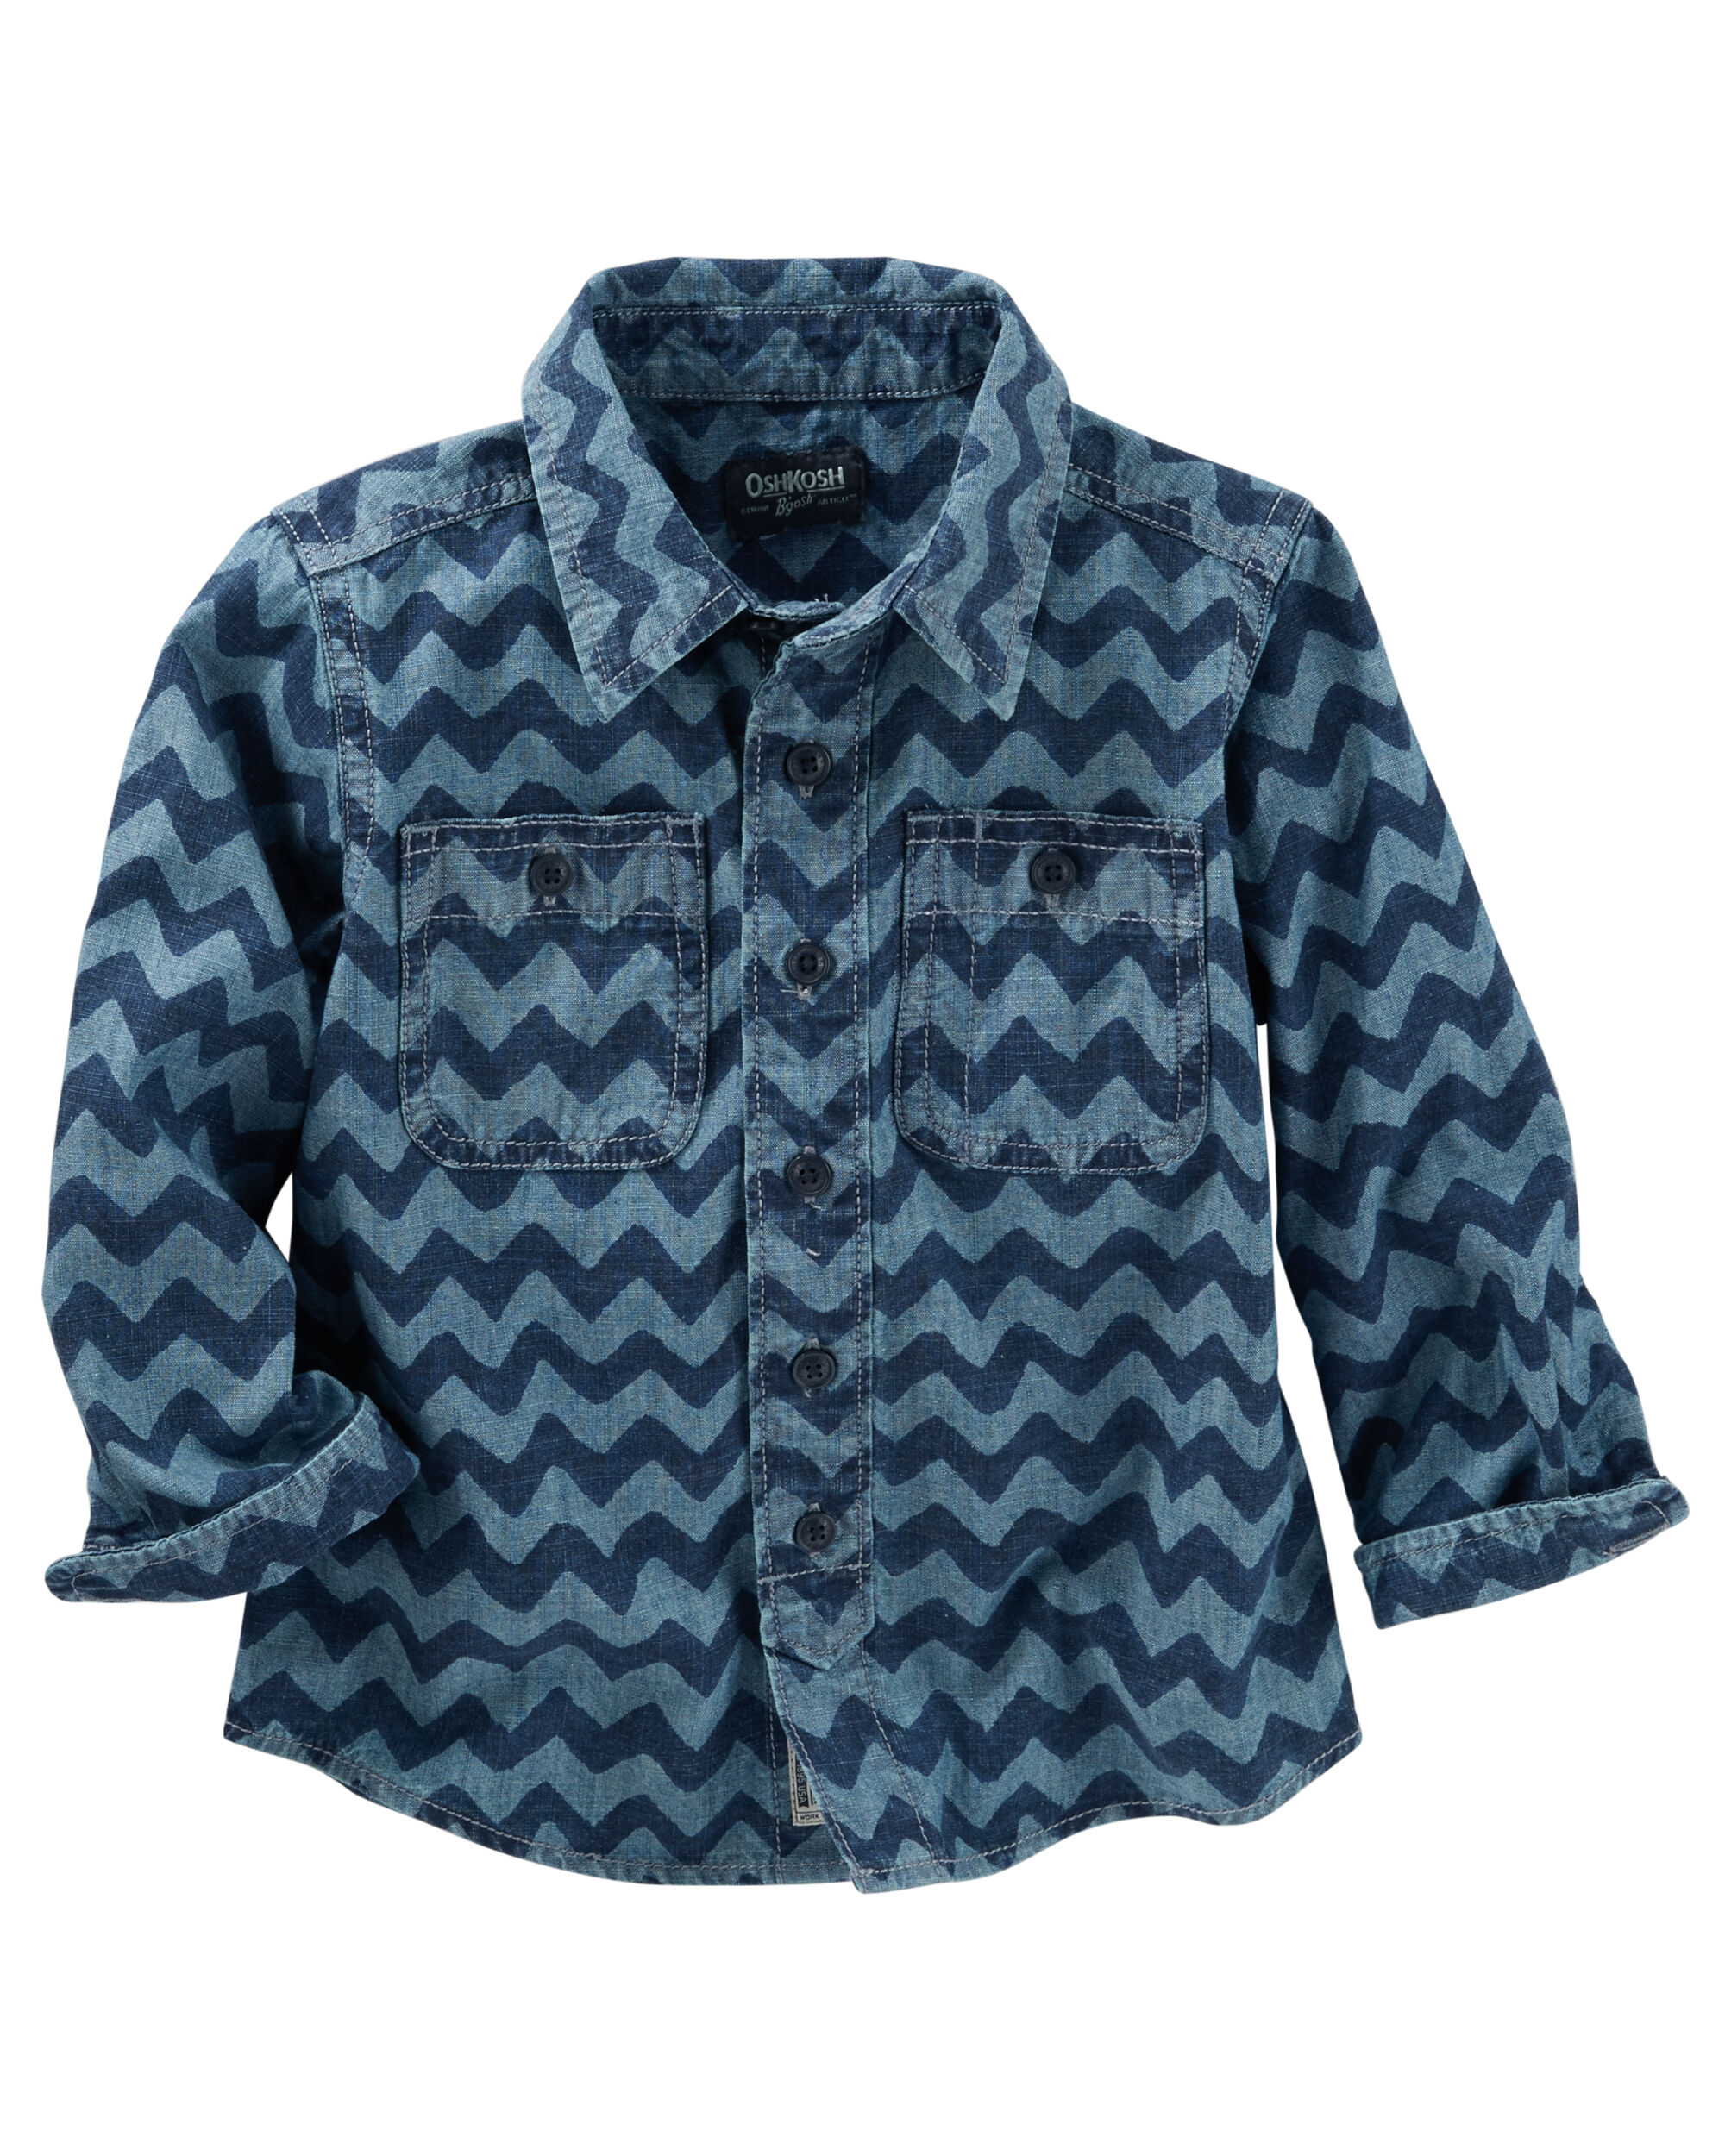 5 Kids Oshkosh Bgosh Little Boys Chambray Chevron Print Shirt Boys Button Down Shirts